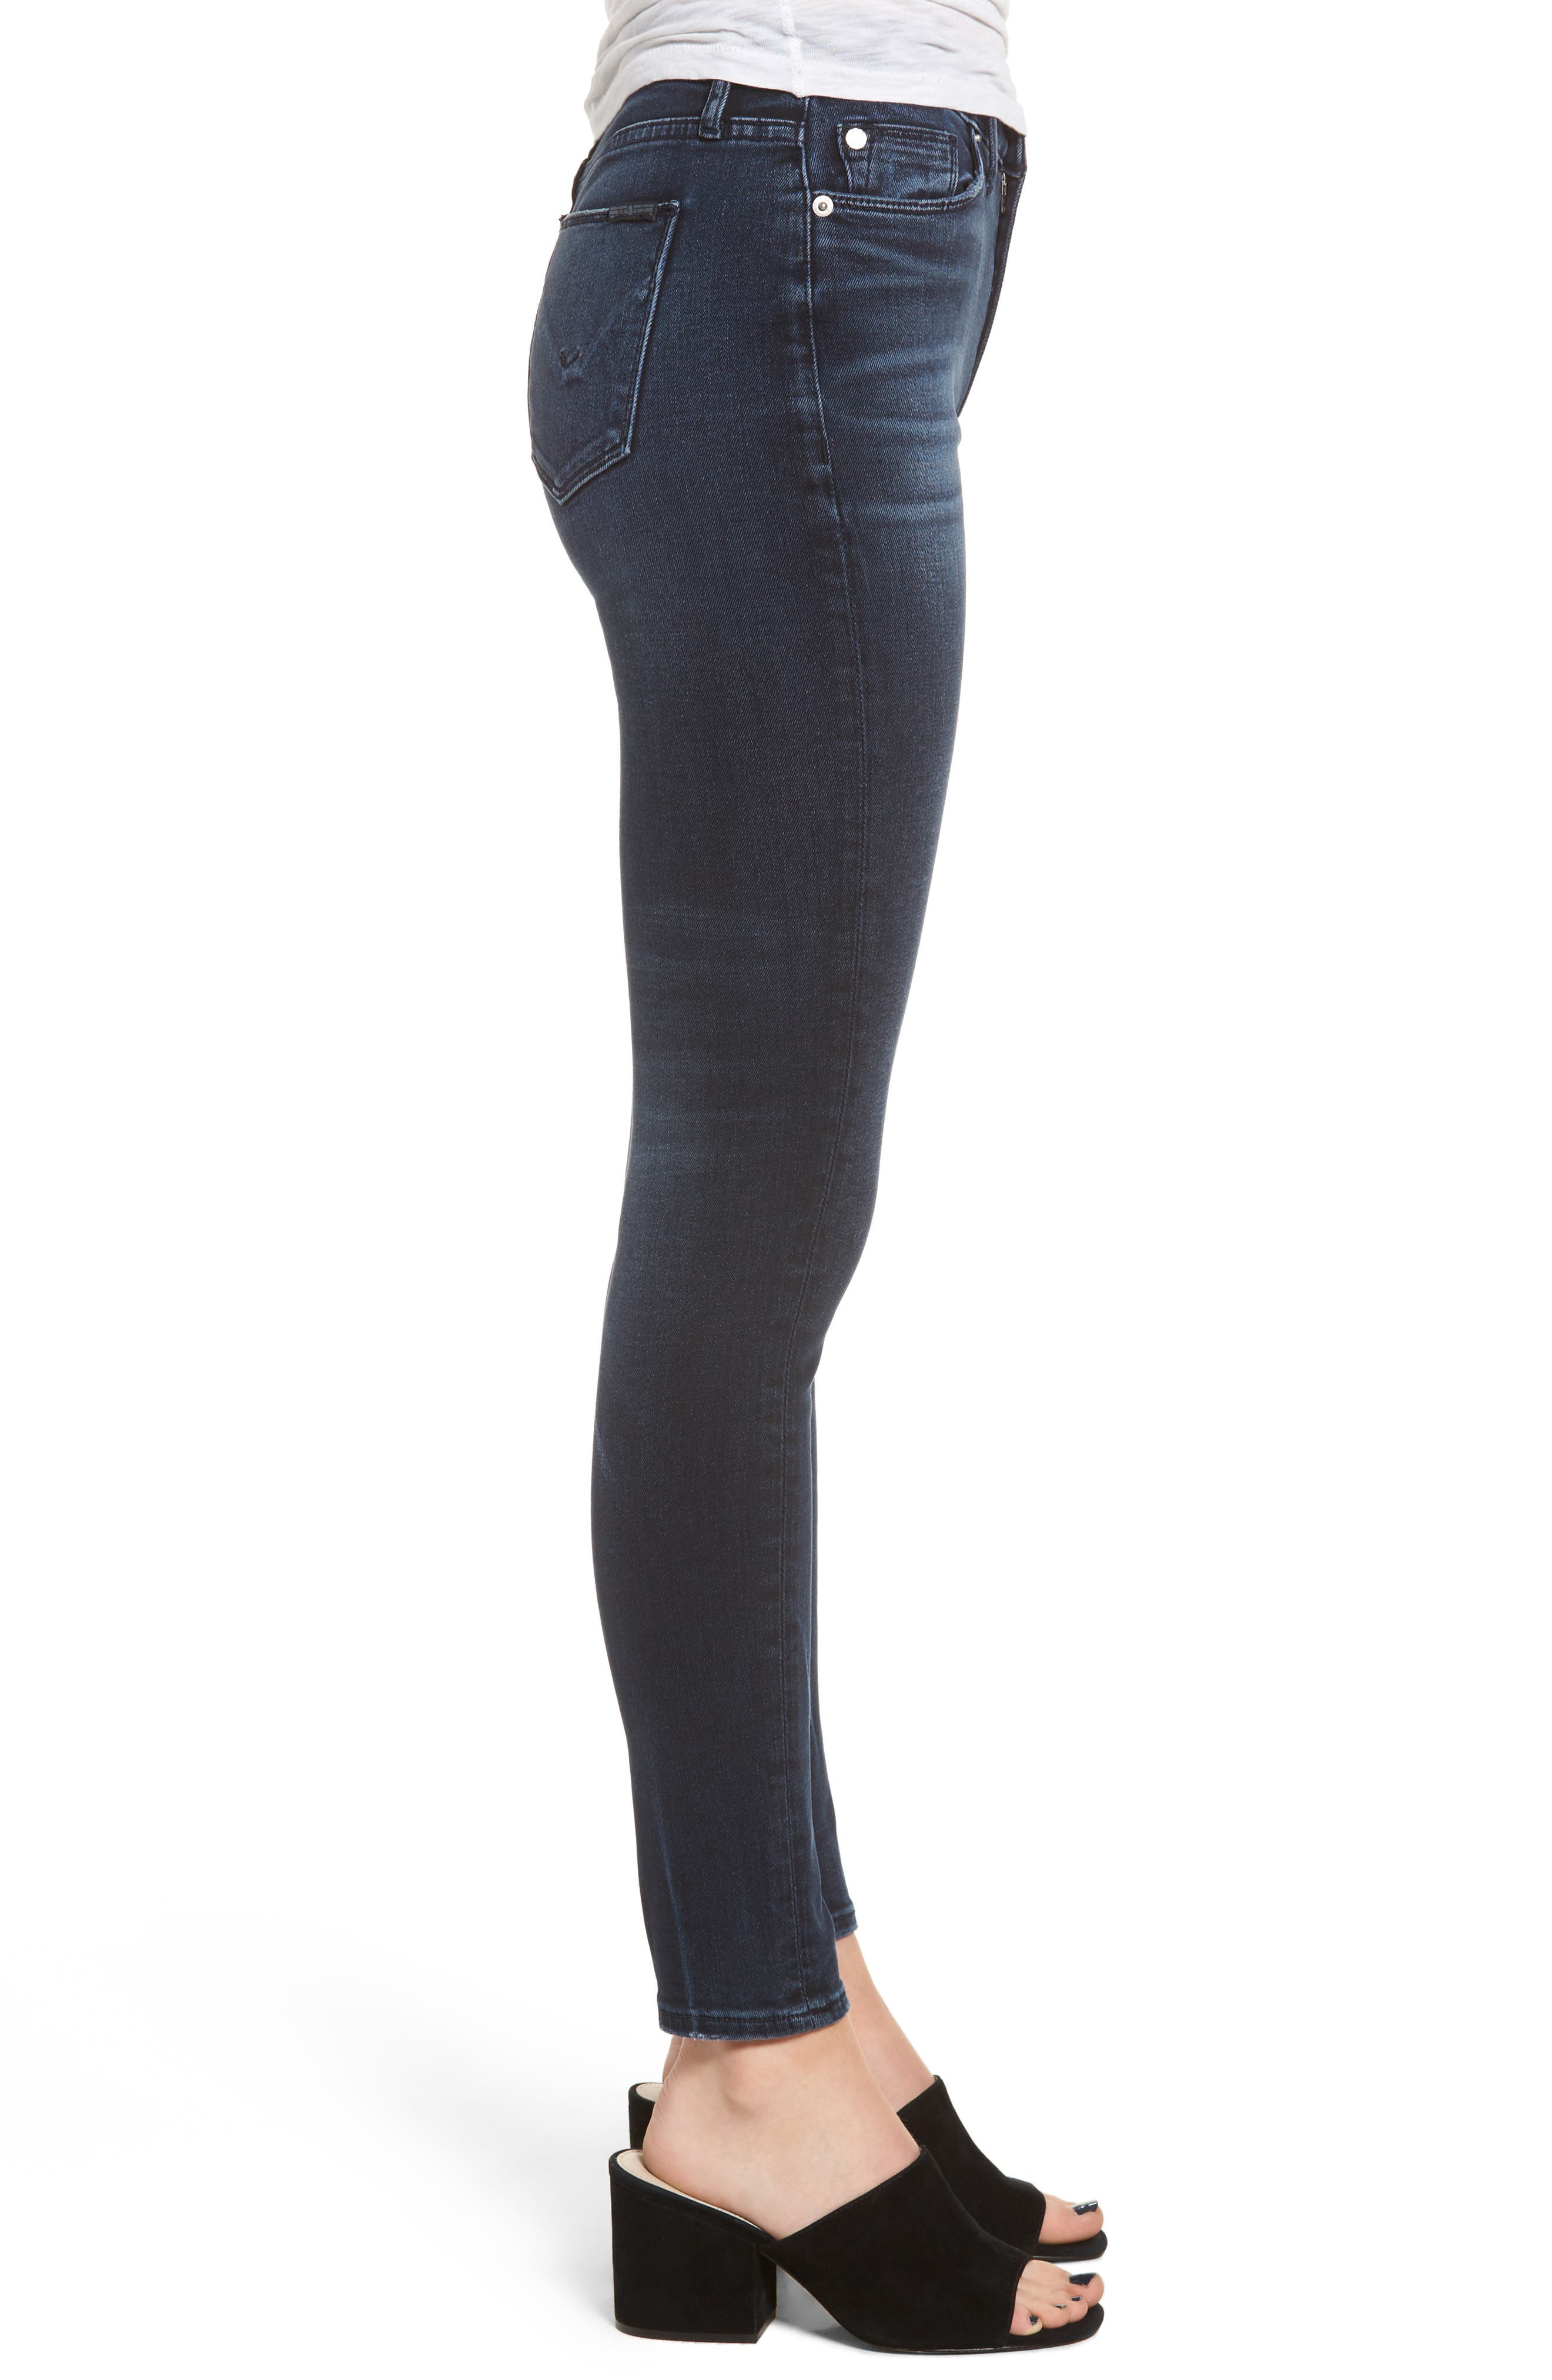 Hudson Barbara High Waist Super Skinny Jeans,                             Alternate thumbnail 3, color,                             Night Ryder